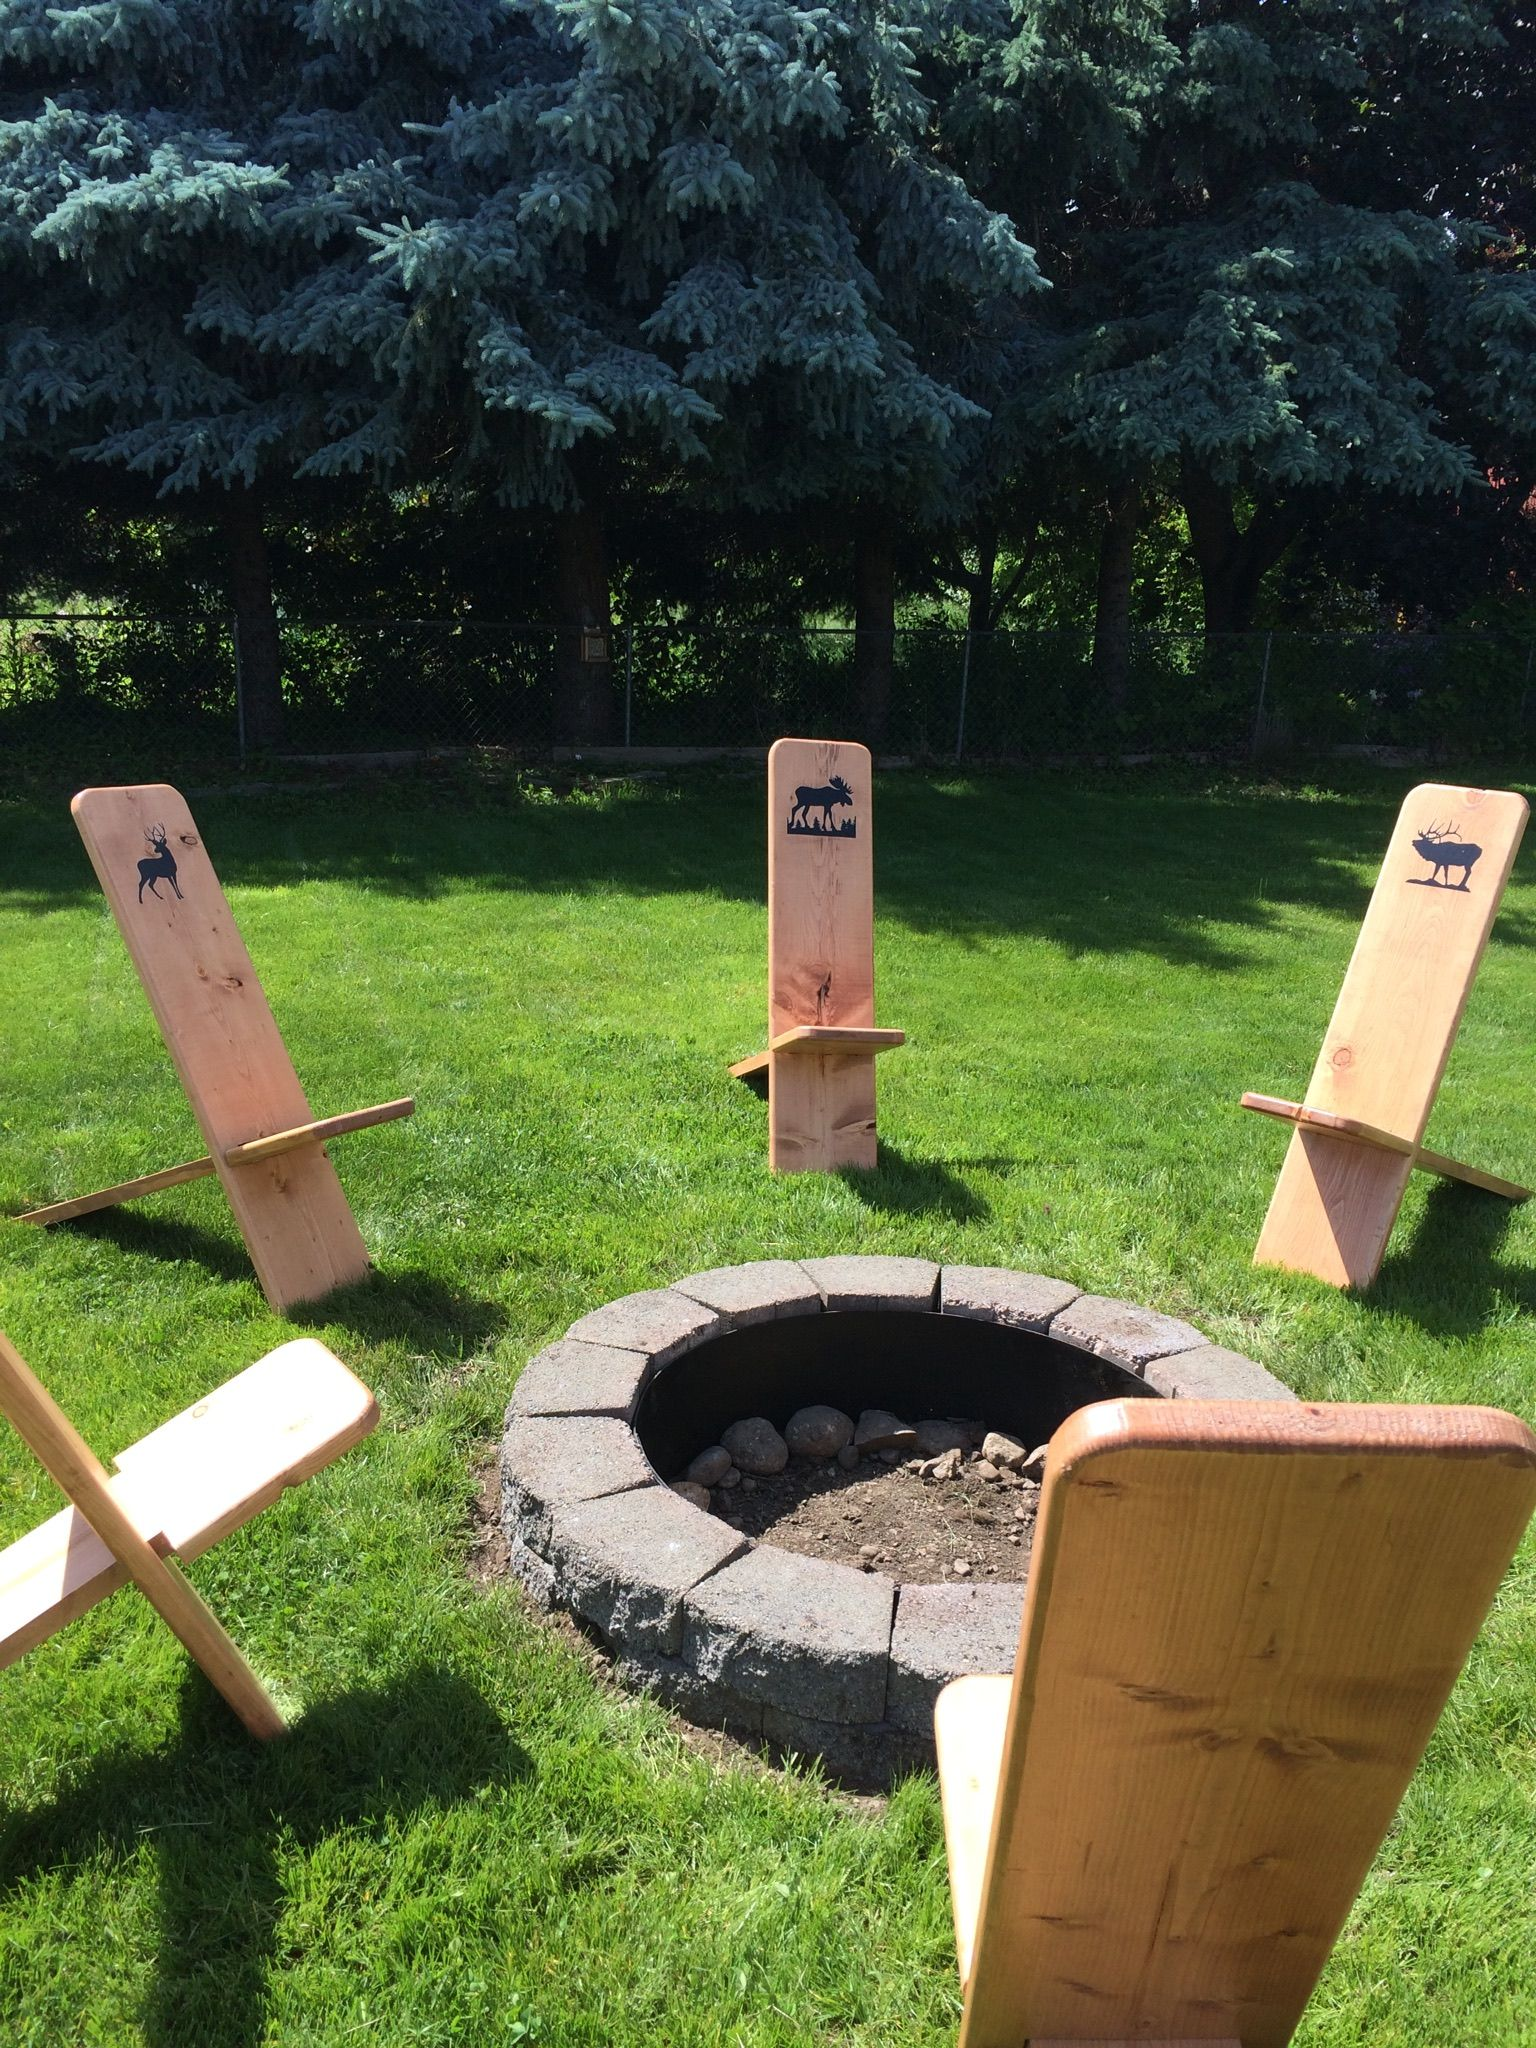 Fire Pit Viking Chairs They Break Down Easily For Storage And Are Surprisingly Comfortable Outdoor Fireplace Designs Viking Decor Fire Pit Bbq